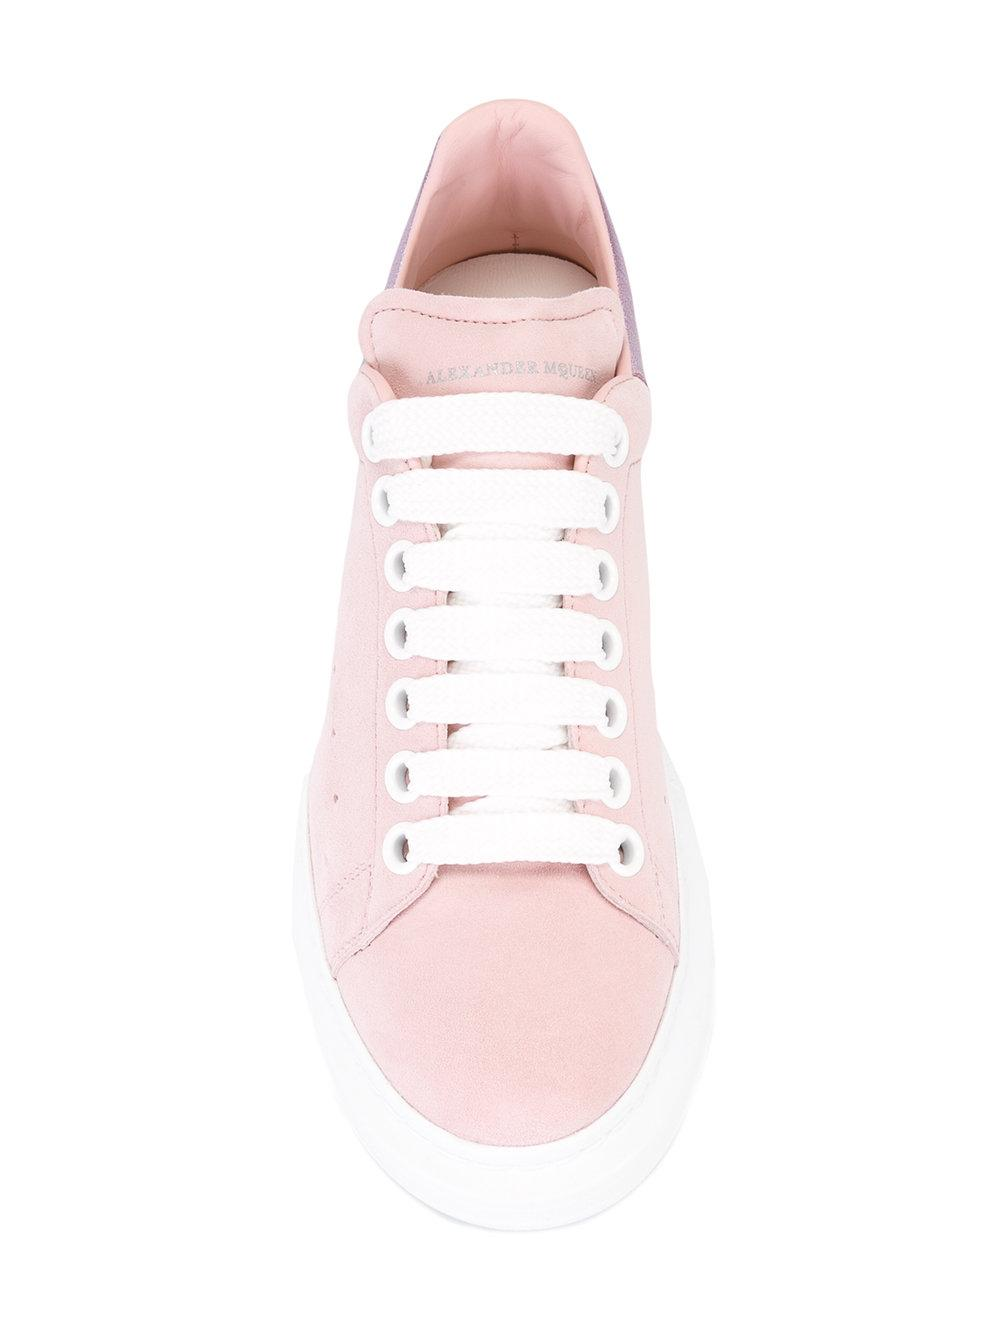 Alexander McQueen Leather Lace-up Sneakers in Pink/Purple (Pink)